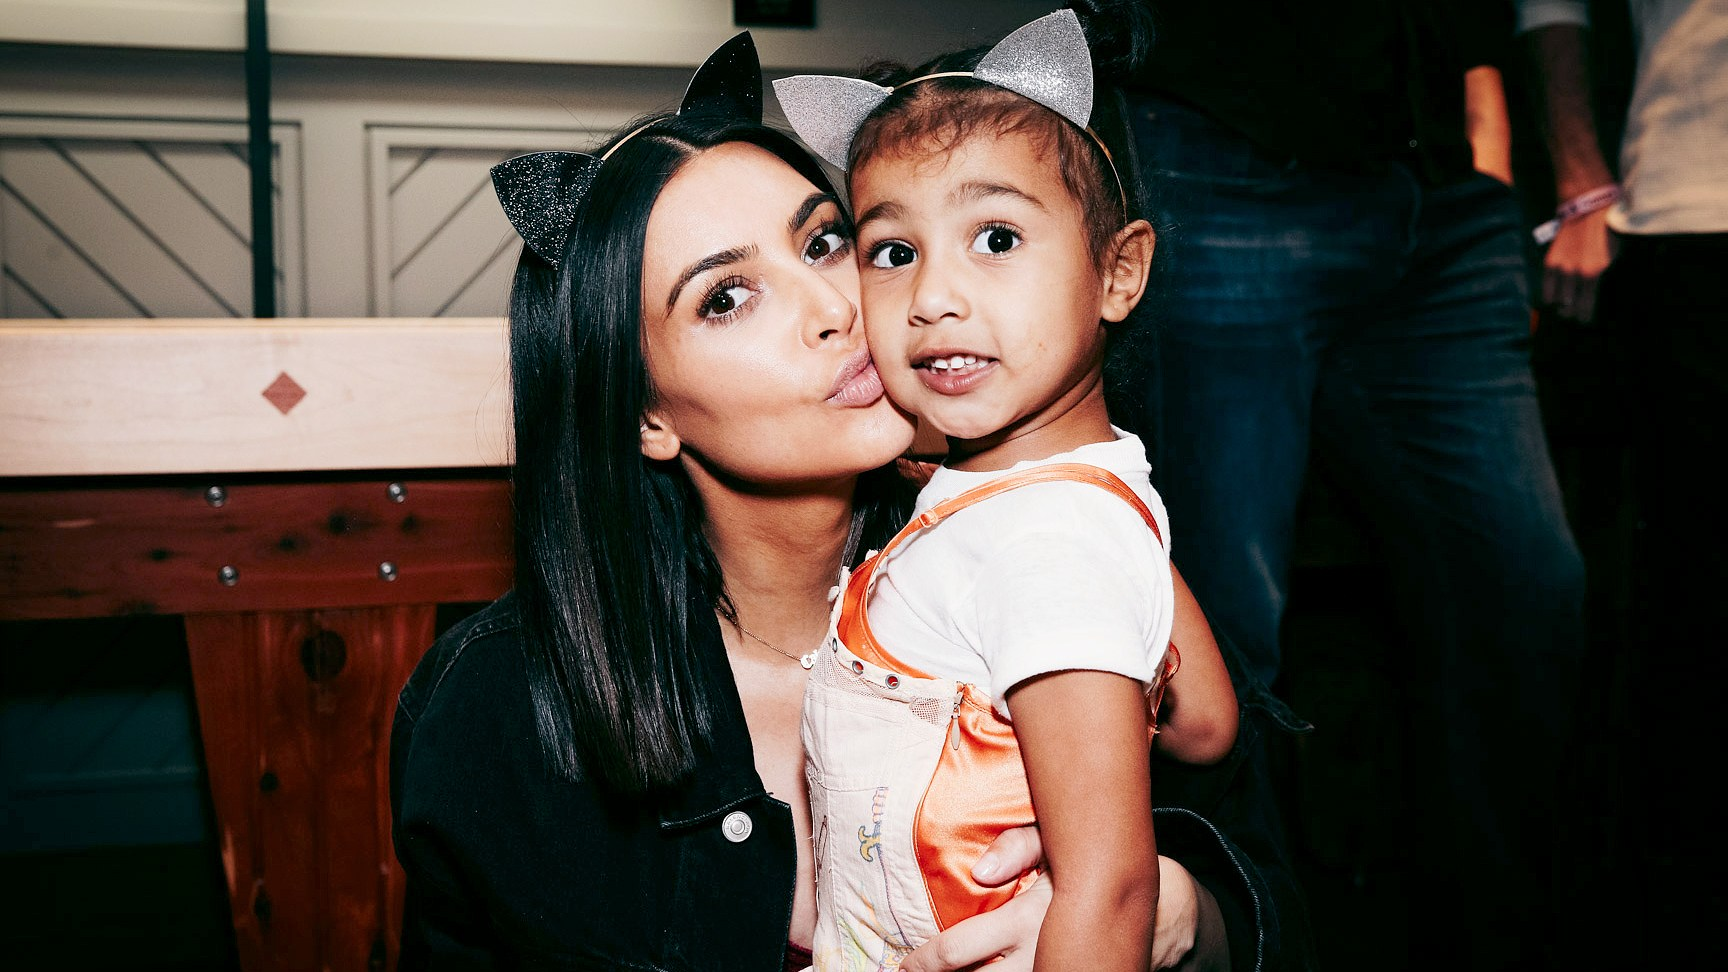 Kim Kardashian and North West in Inglewood, California, on March 31, 2017.